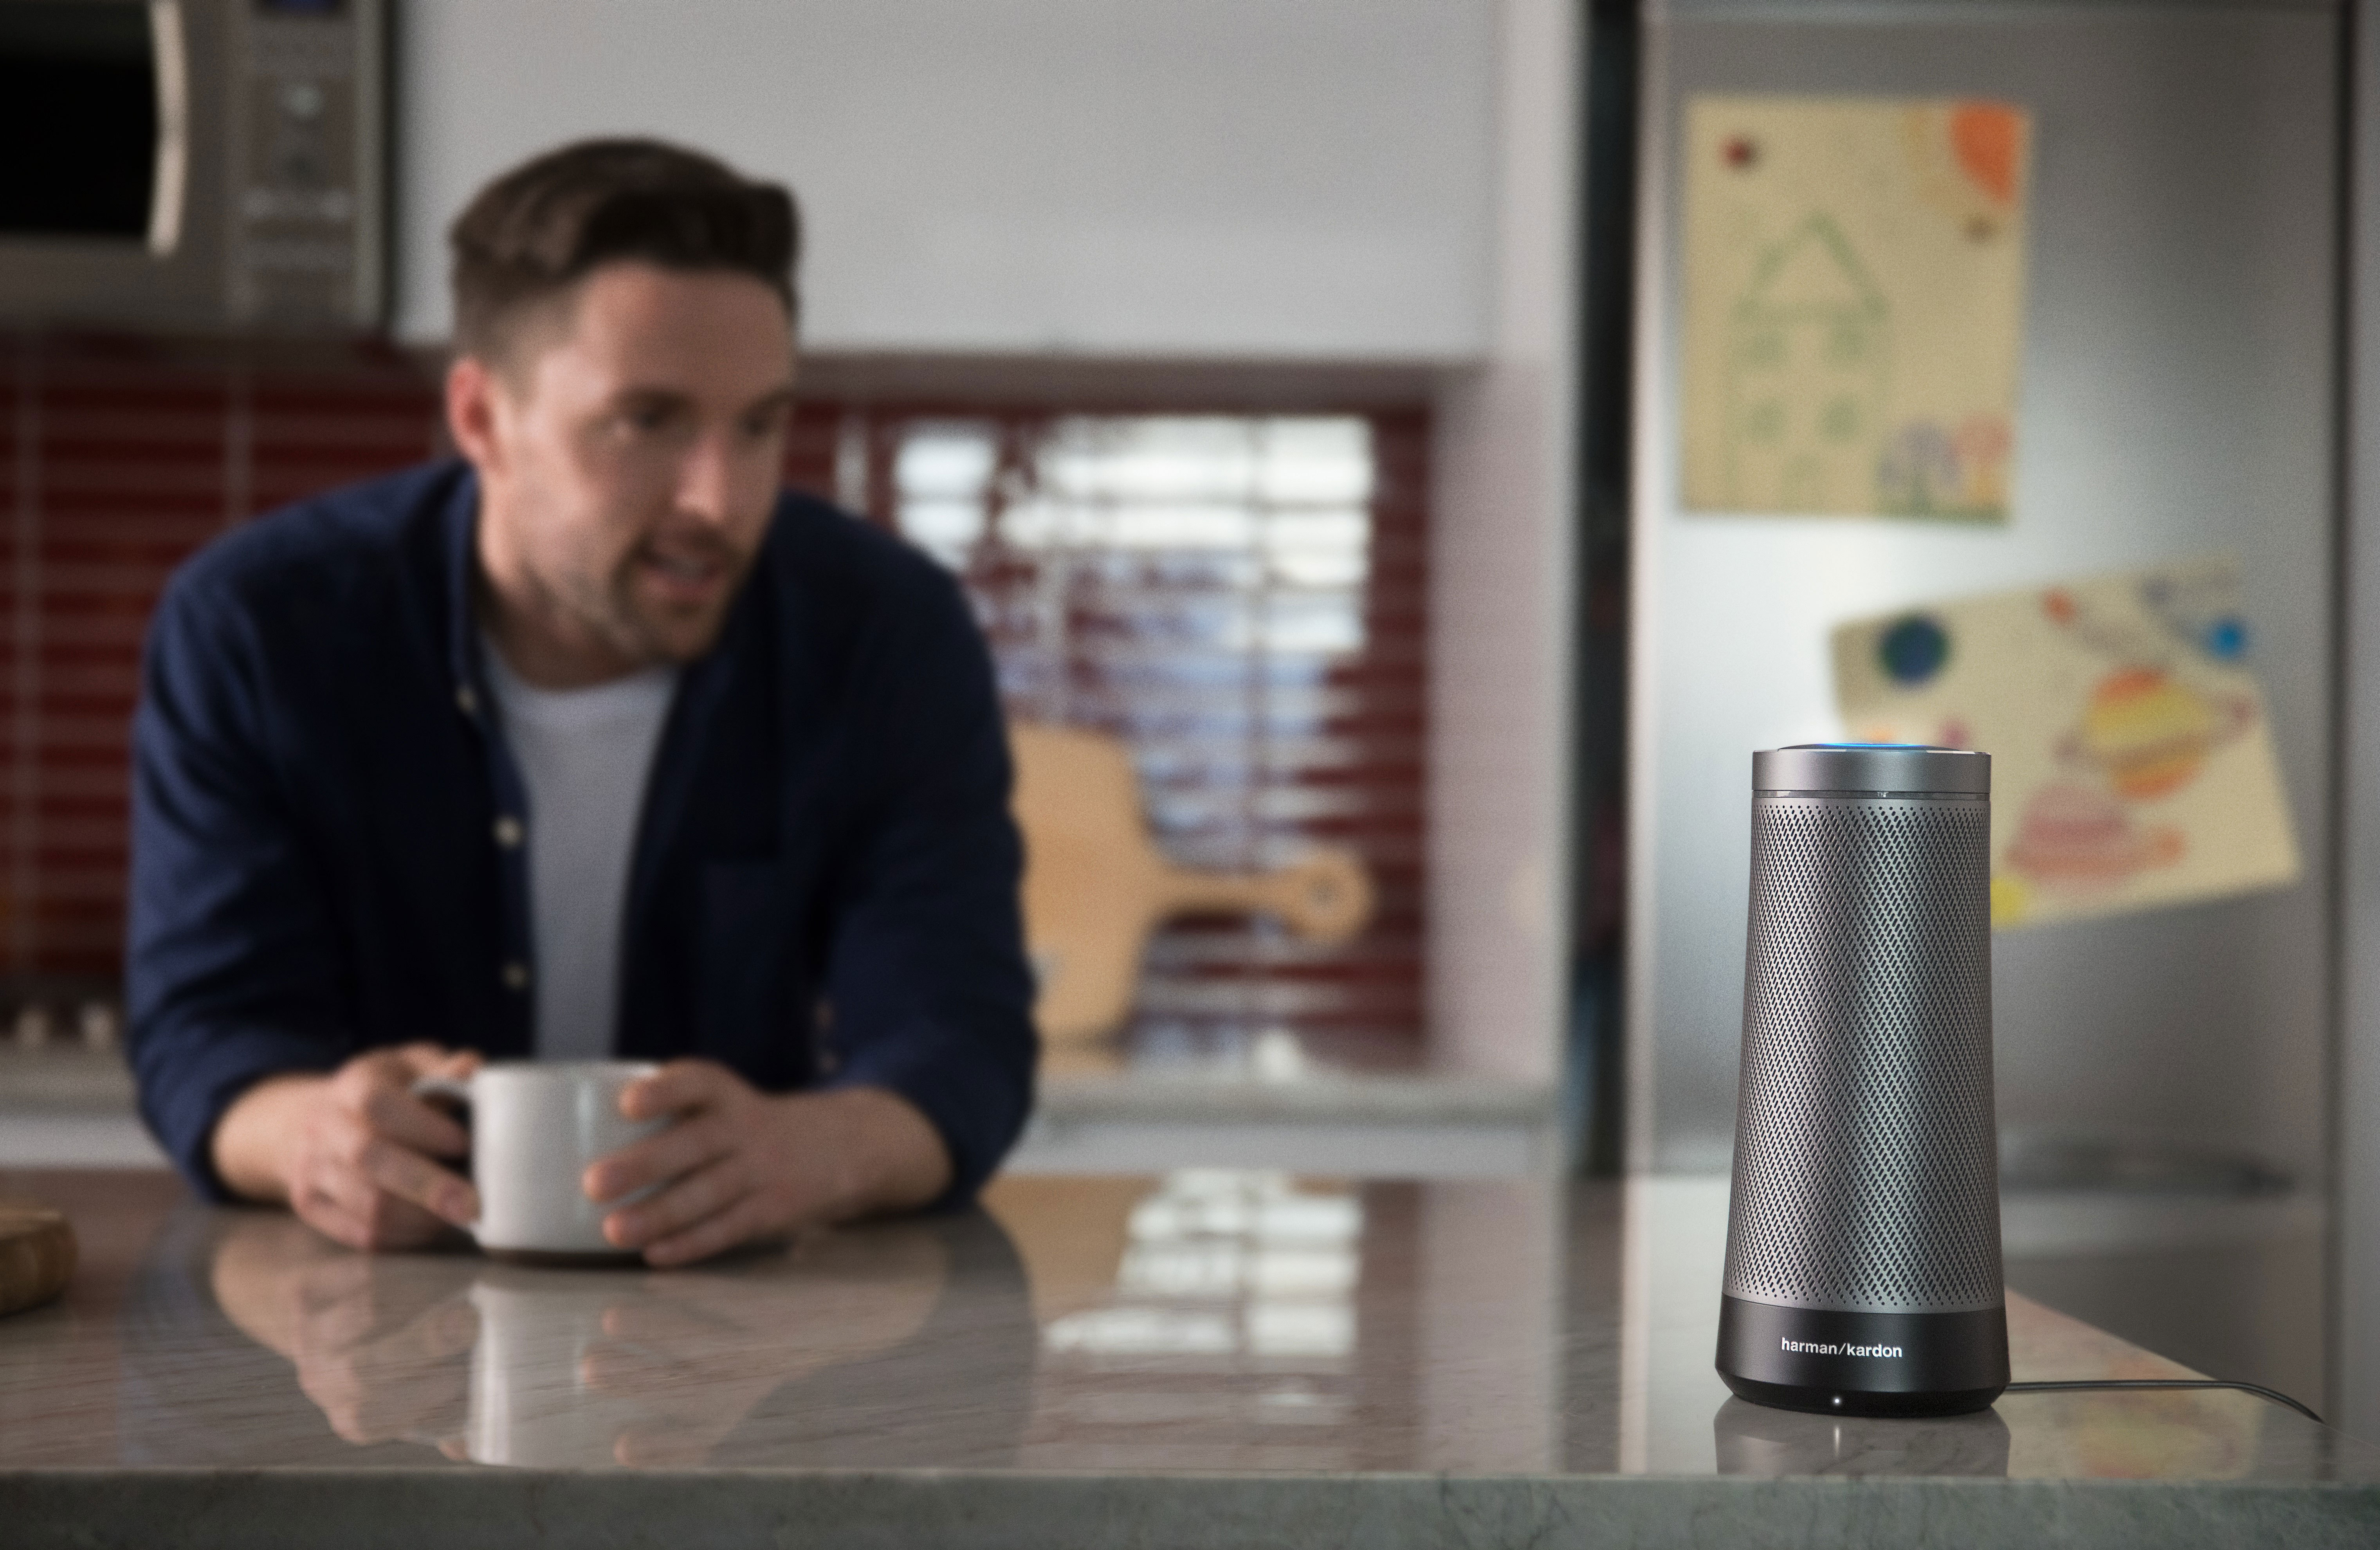 Harman Kardon's Cortana-enabled Speaker returns to all-time low at $50